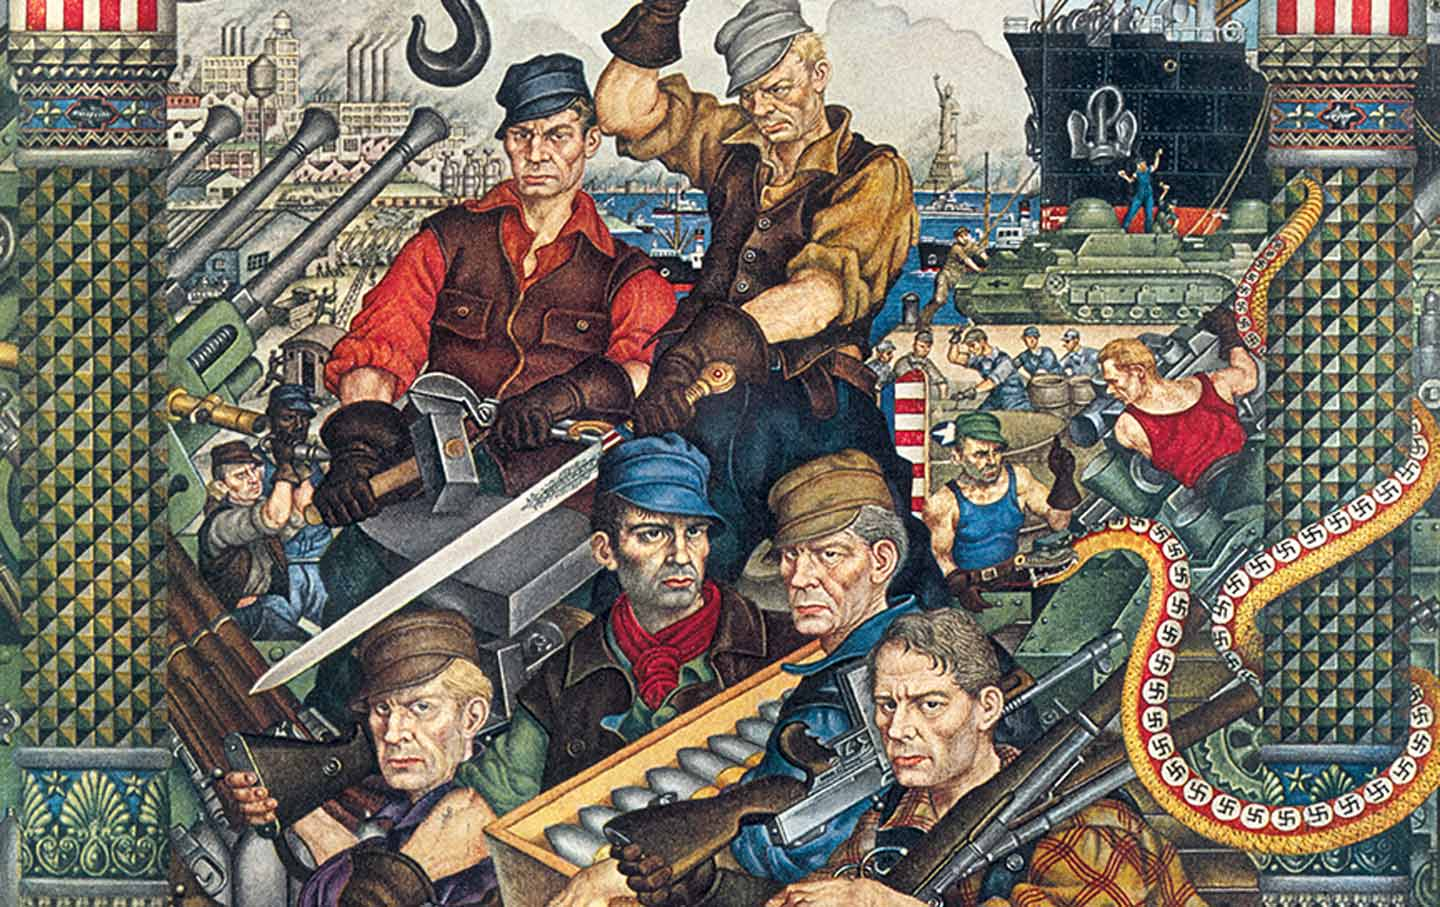 1-Szyk.-Arsenal-of-Democracy-(as-reproduced-in-Collier's,-September-12,-1942)_img